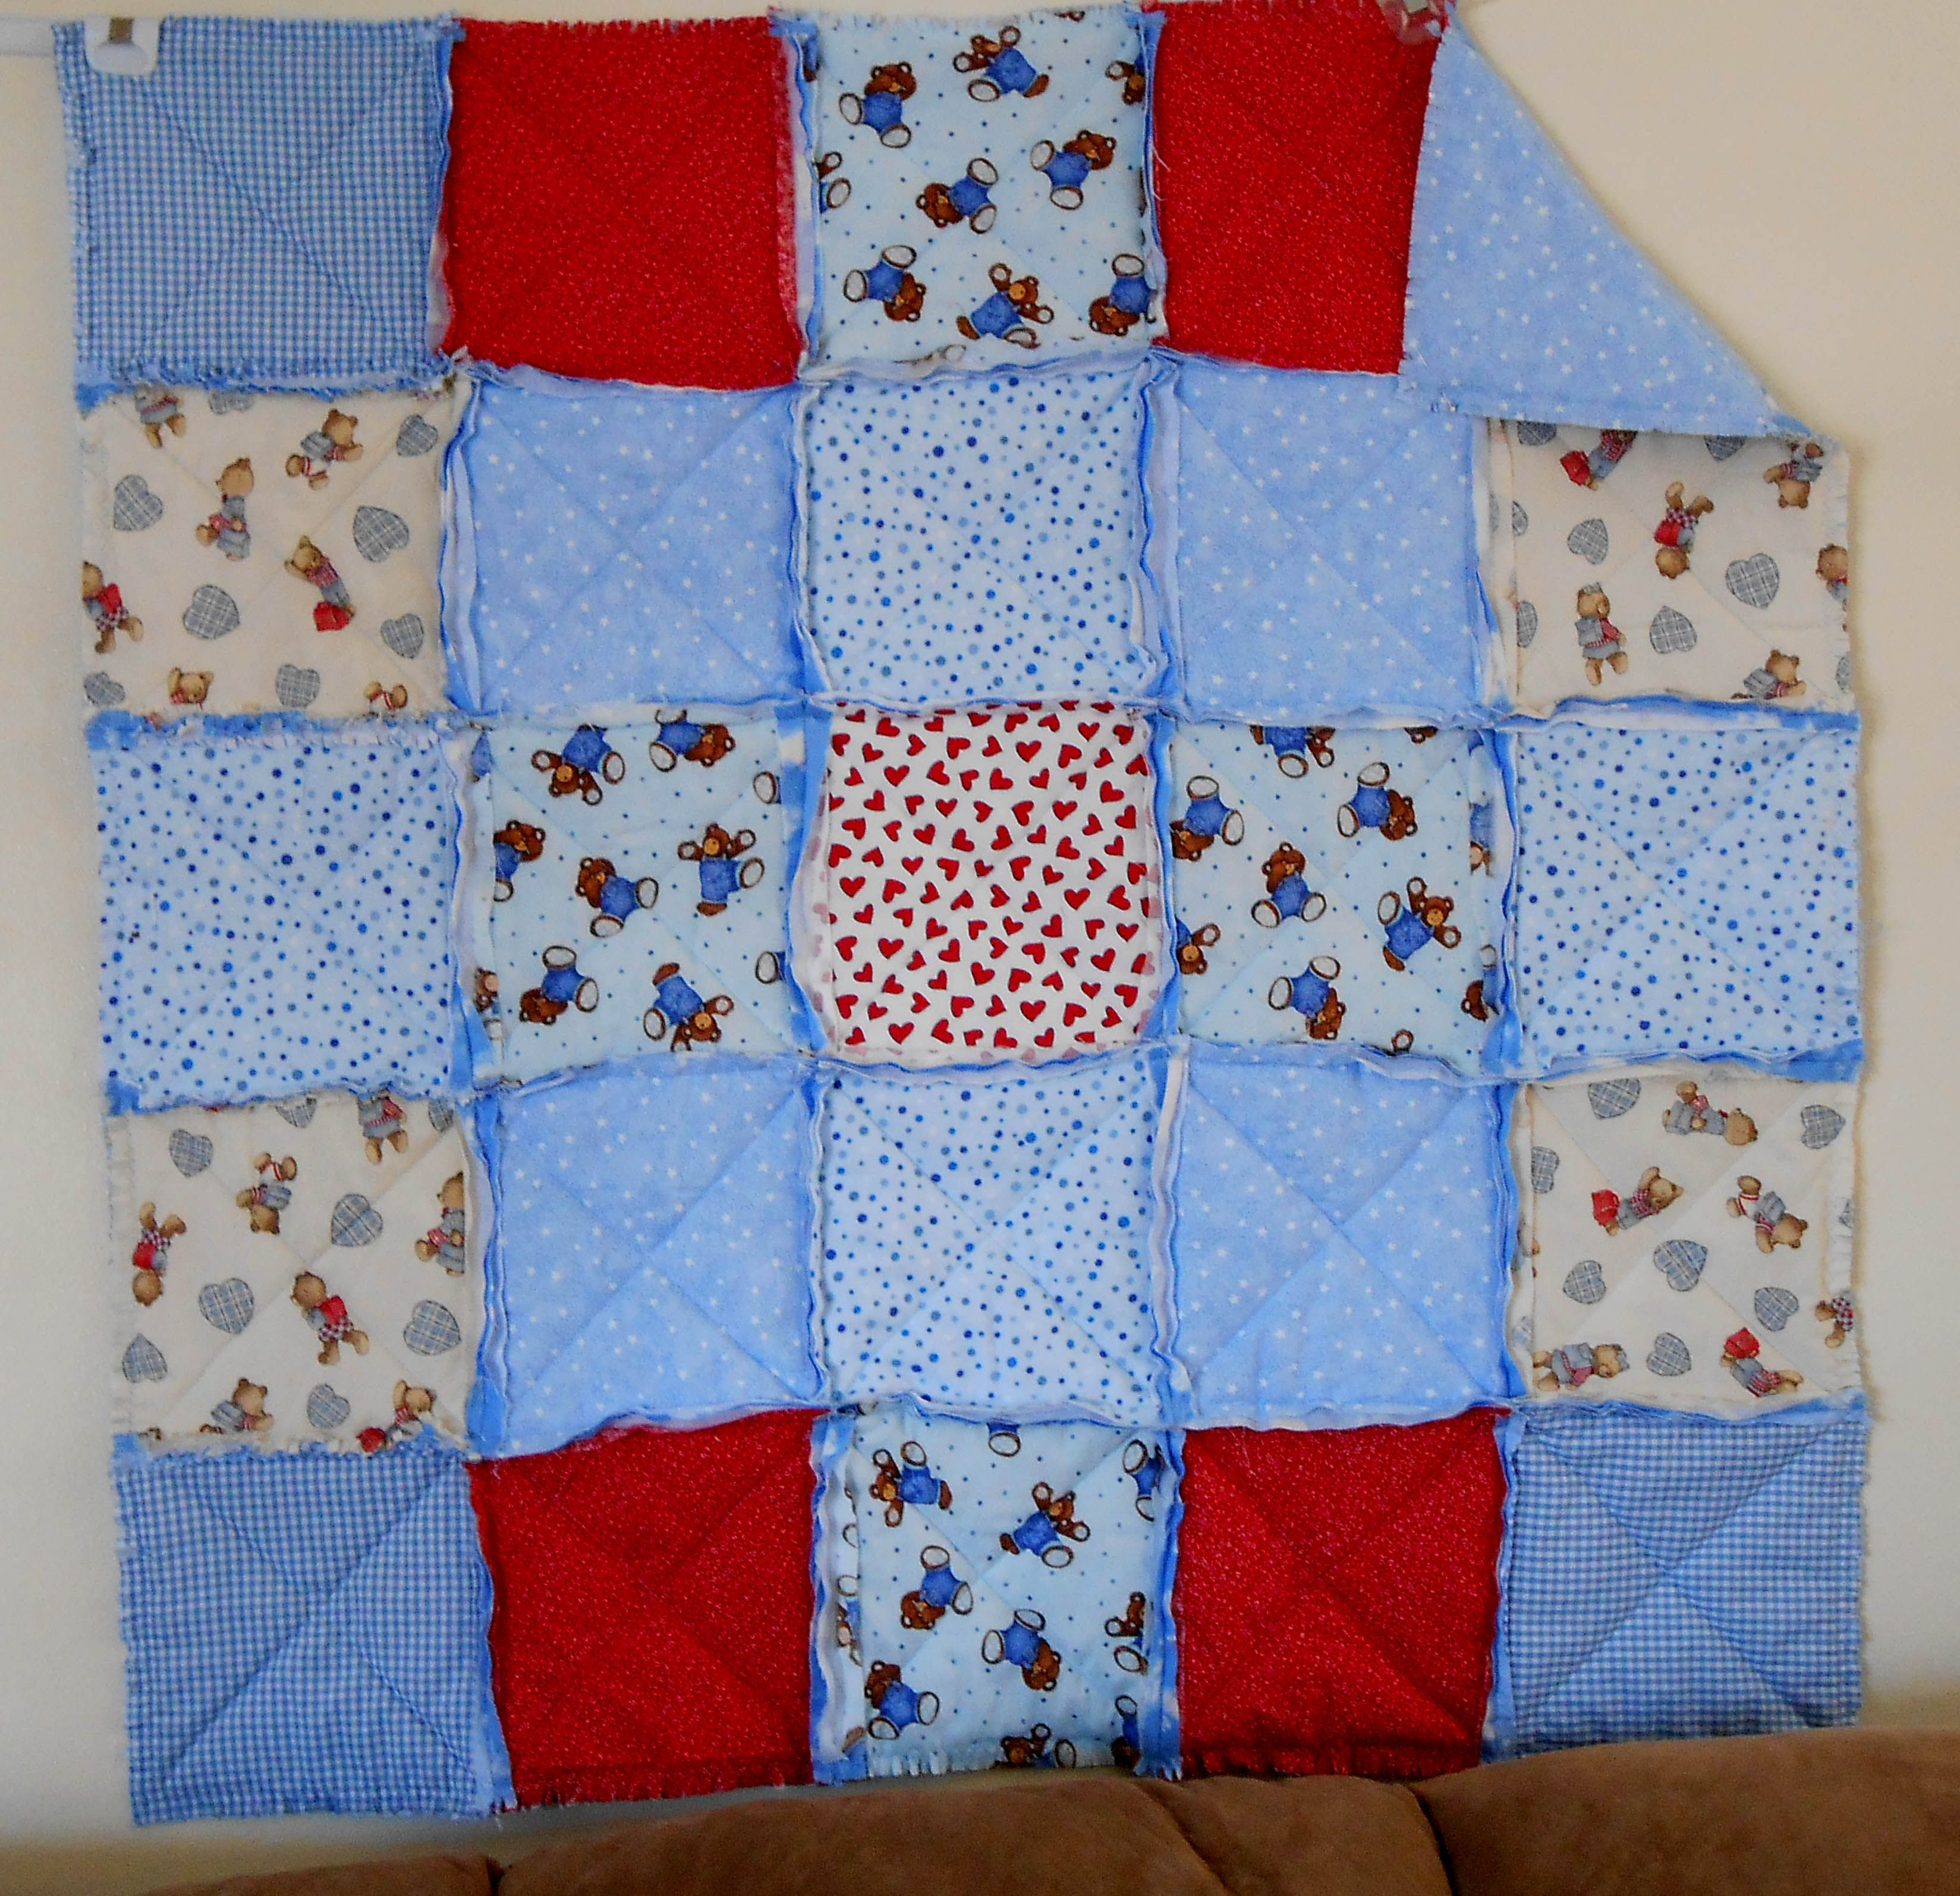 05-03-13  Rag quilt.  Messed up my thumb so have not been able to do all the cutting yet.  Soon!!